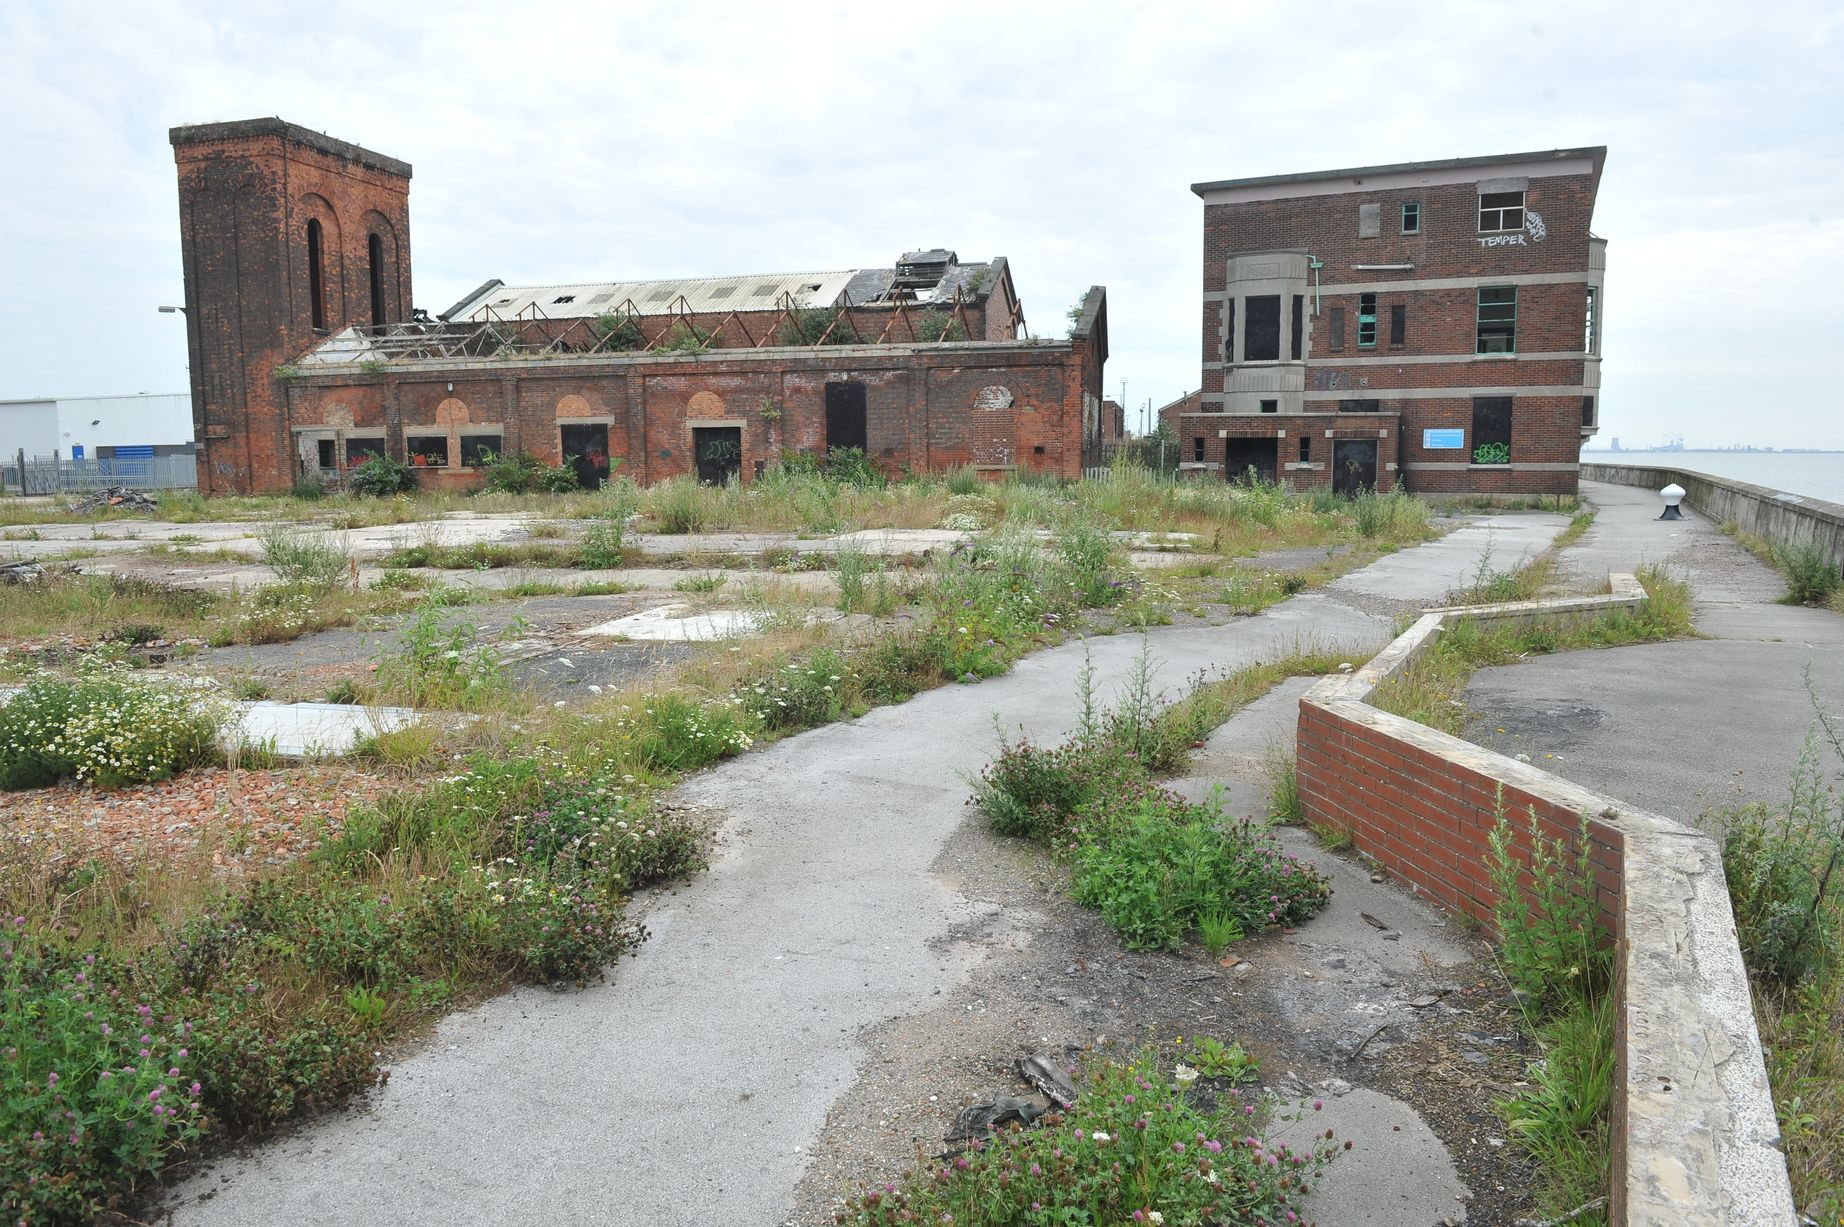 Abandoned Government Buildings, abandoned government buildings for sale, abandoned government buildings for sale south africa, abandoned government buildings for sale near me, abandoned government buildings, abandoned government buildings uk, abandoned us government buildings,